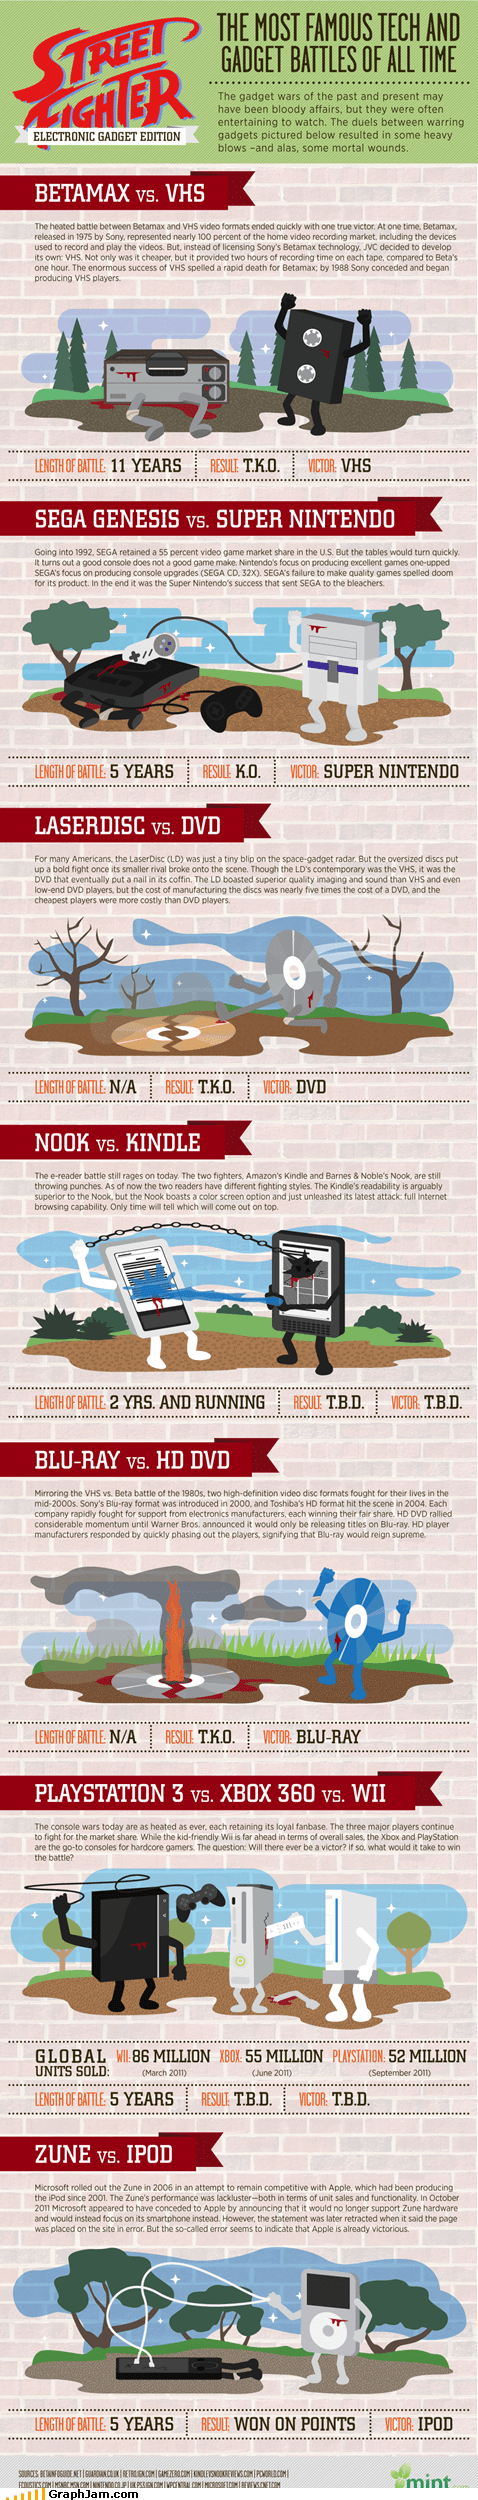 betamax blu ray infographic ipod kindle nook ps3 sega snes Street fighter wii xbox - 5617744384